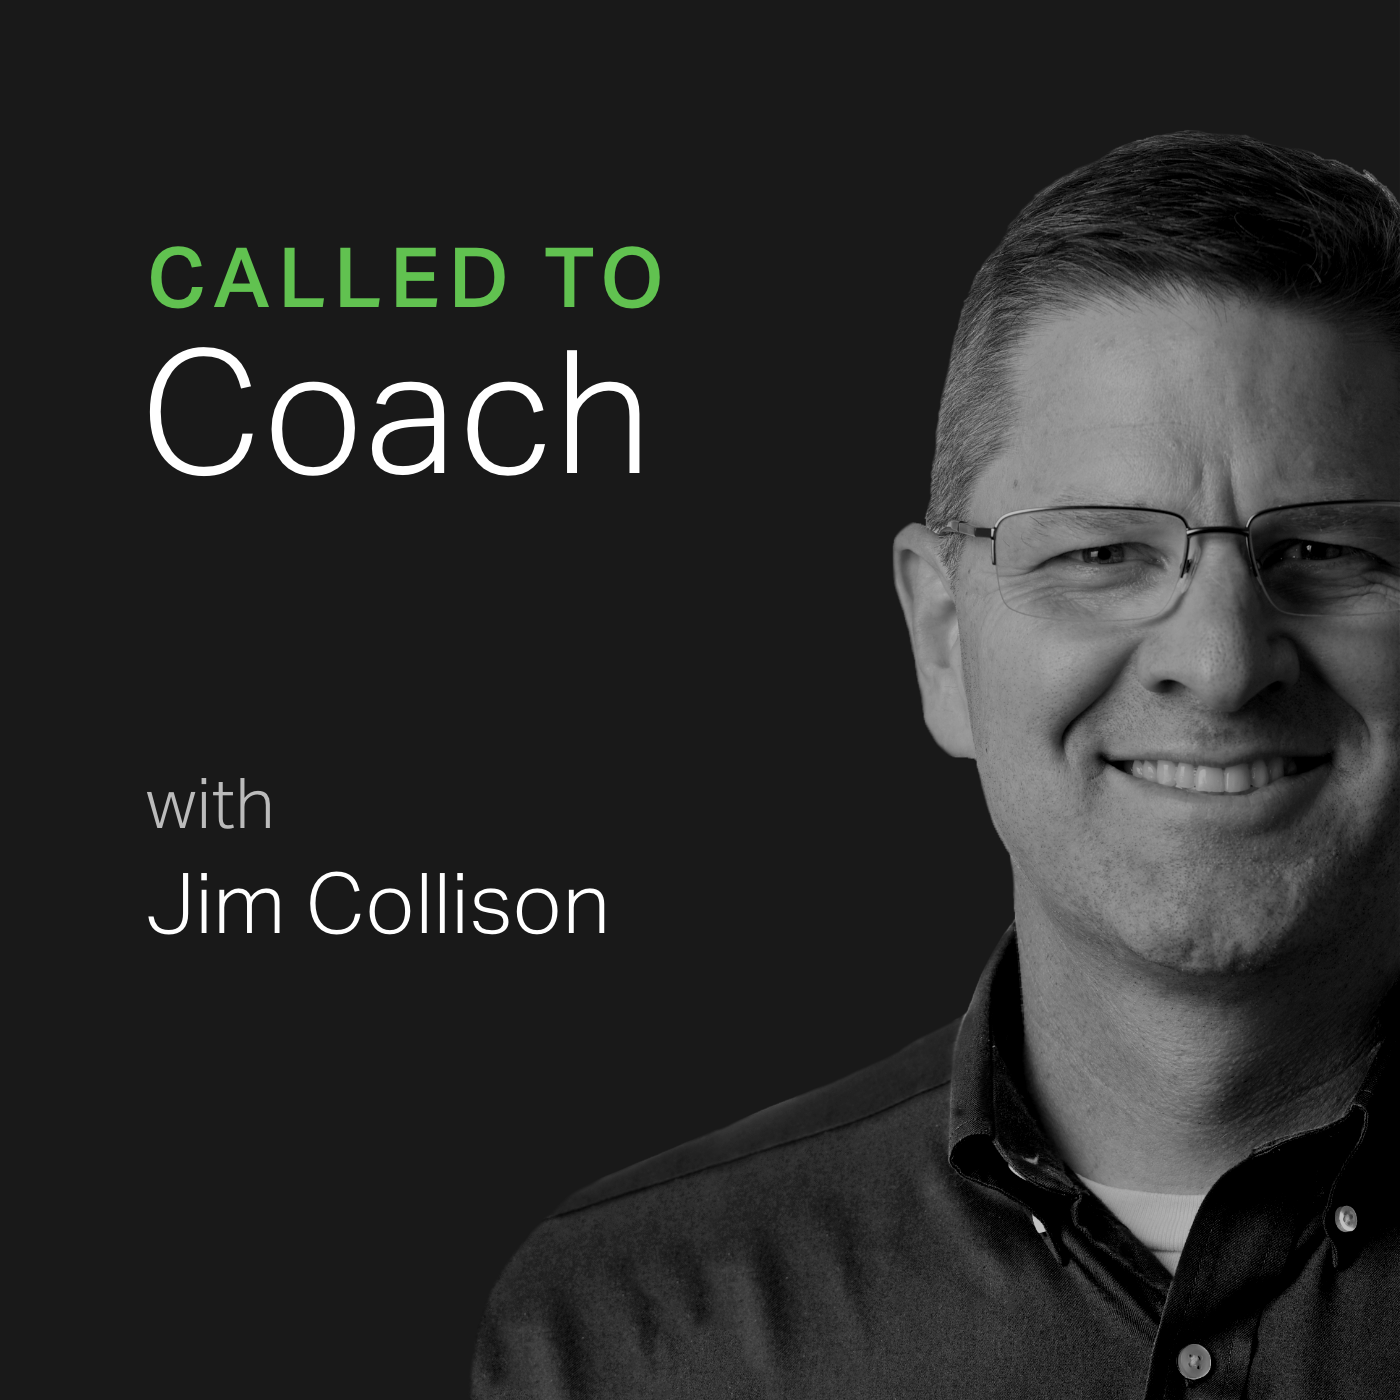 Featured on  Gallup's 'Called to Coach'  as an expert on coaching and leading Millennials.